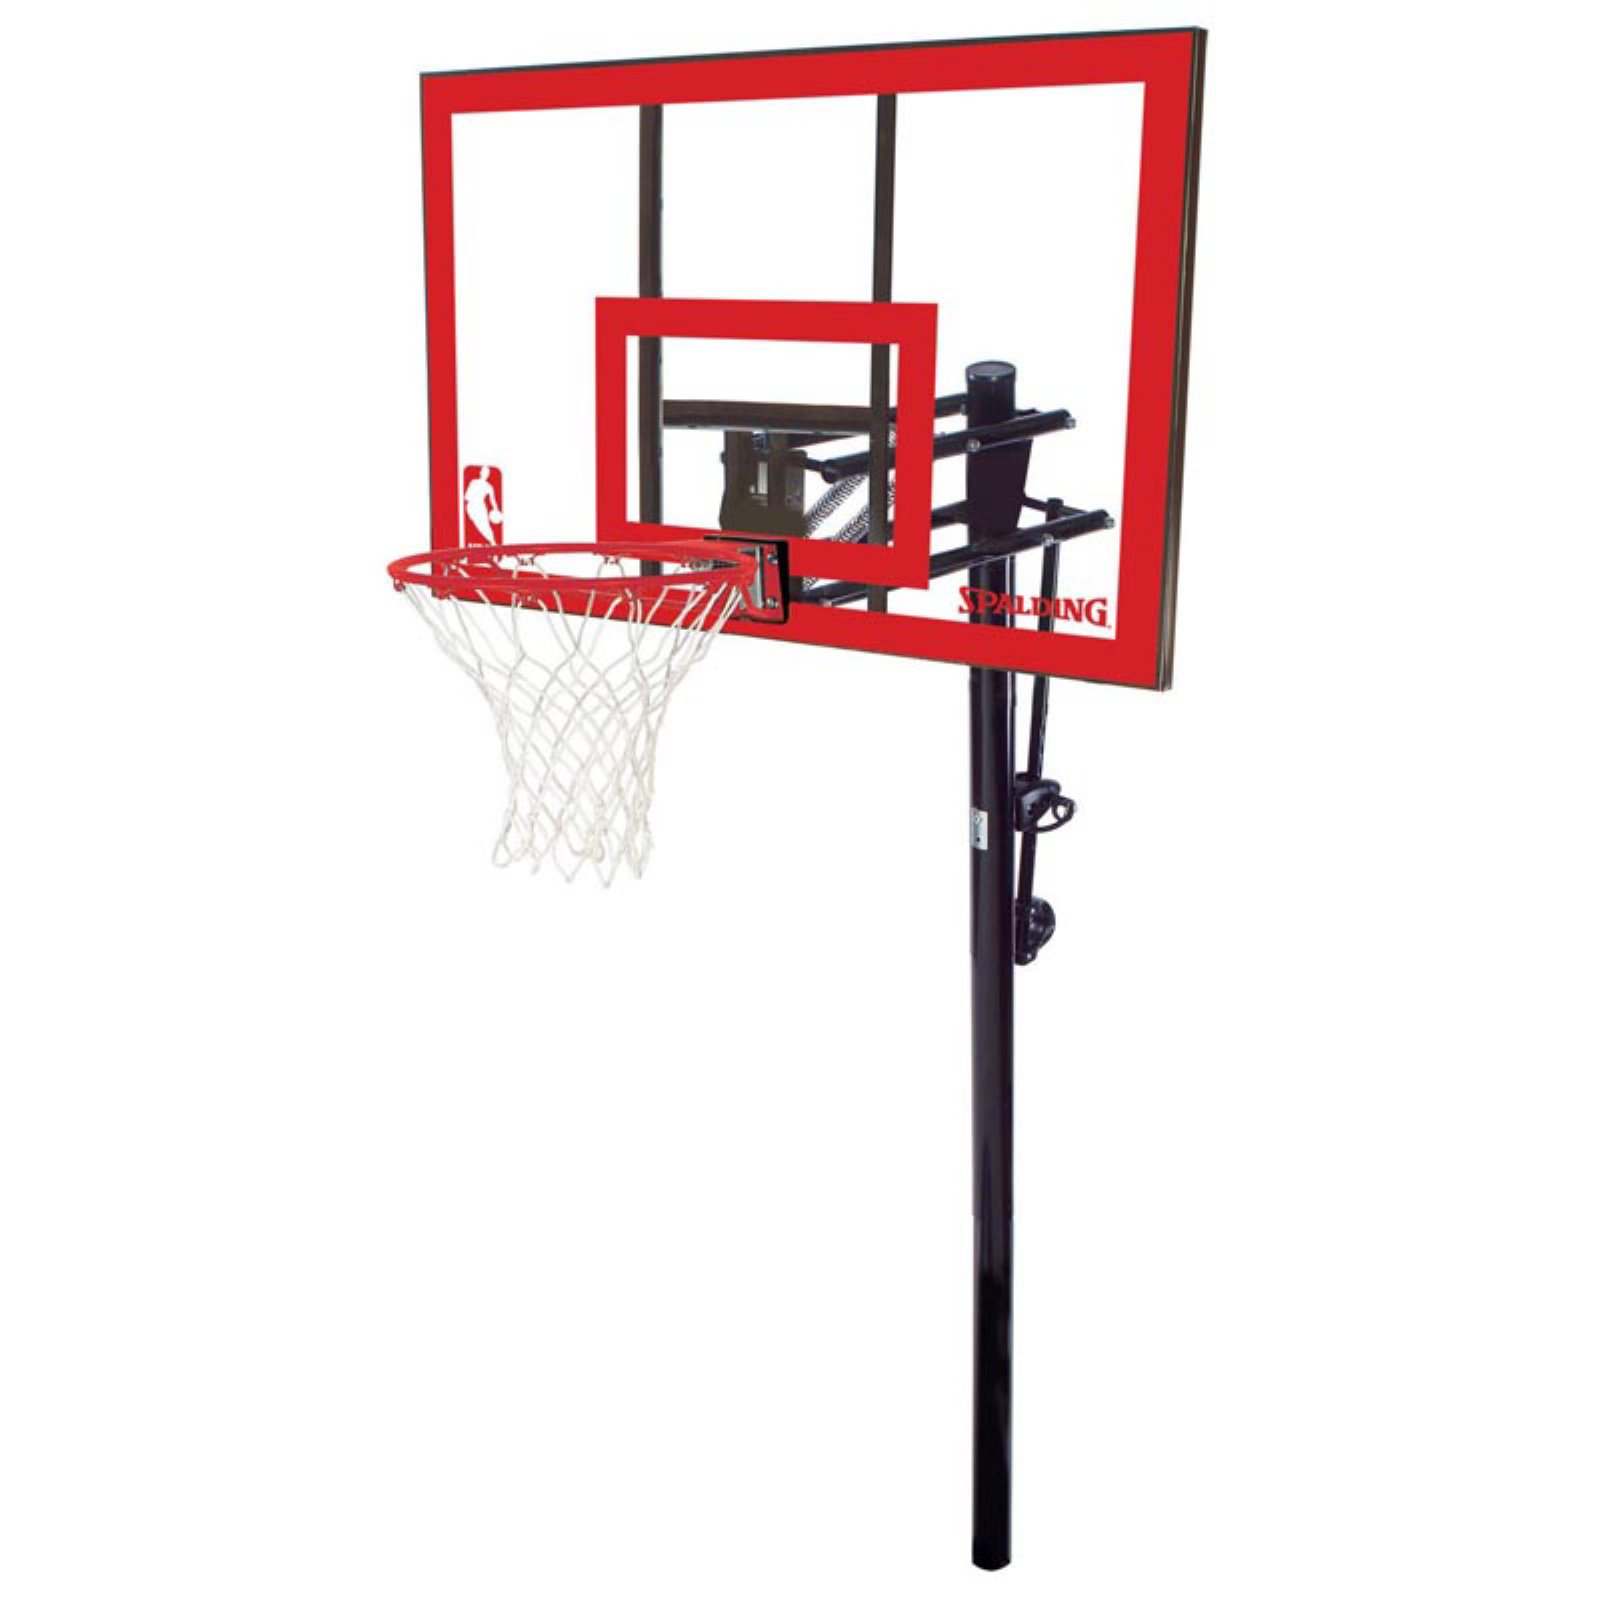 "Spalding NBA 48"" Polycarbonate Pro Glide In-Ground Hoop System"